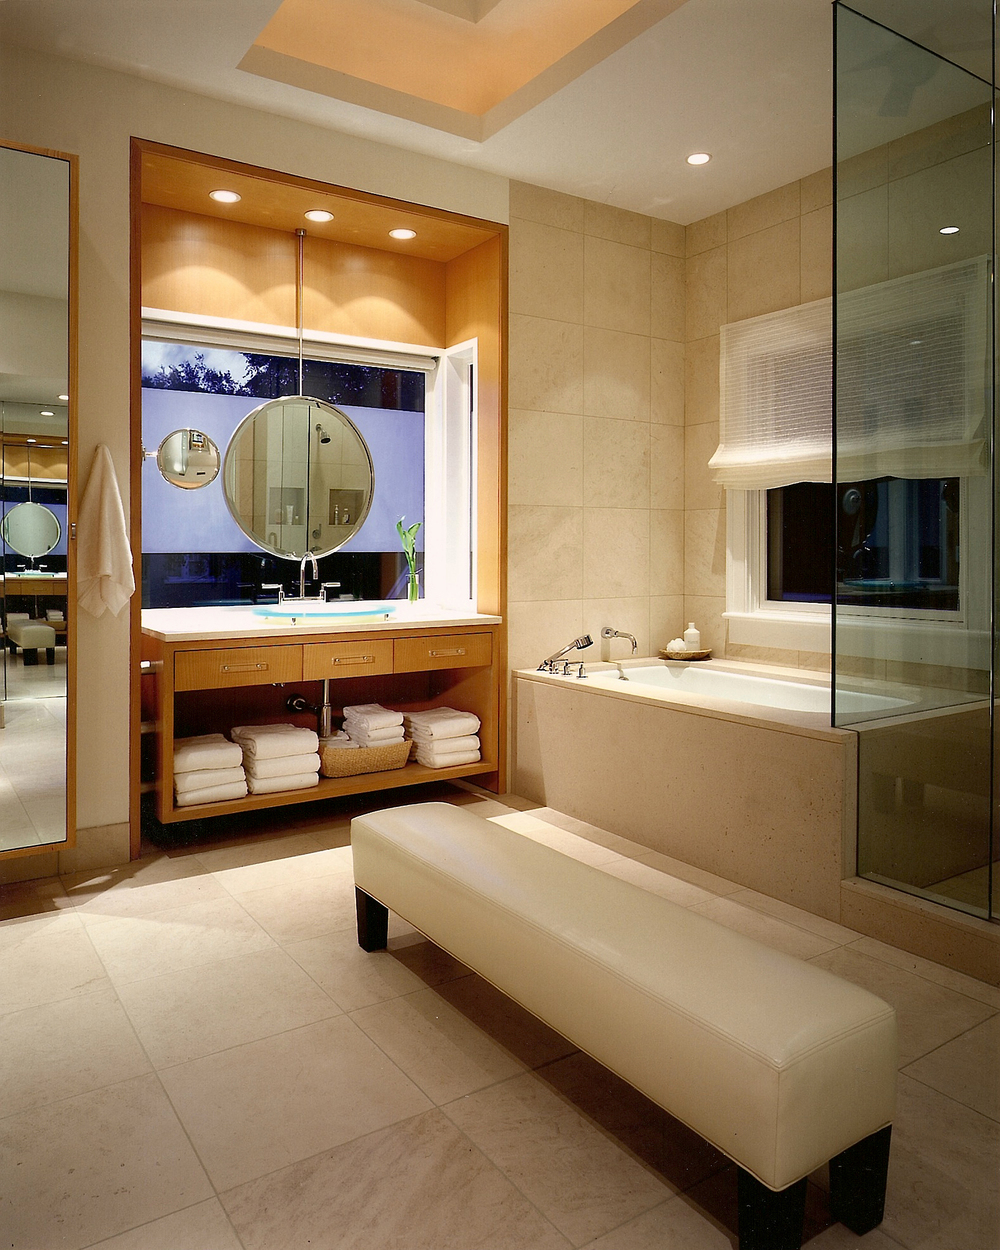 Orleans - master bathroom.jpg